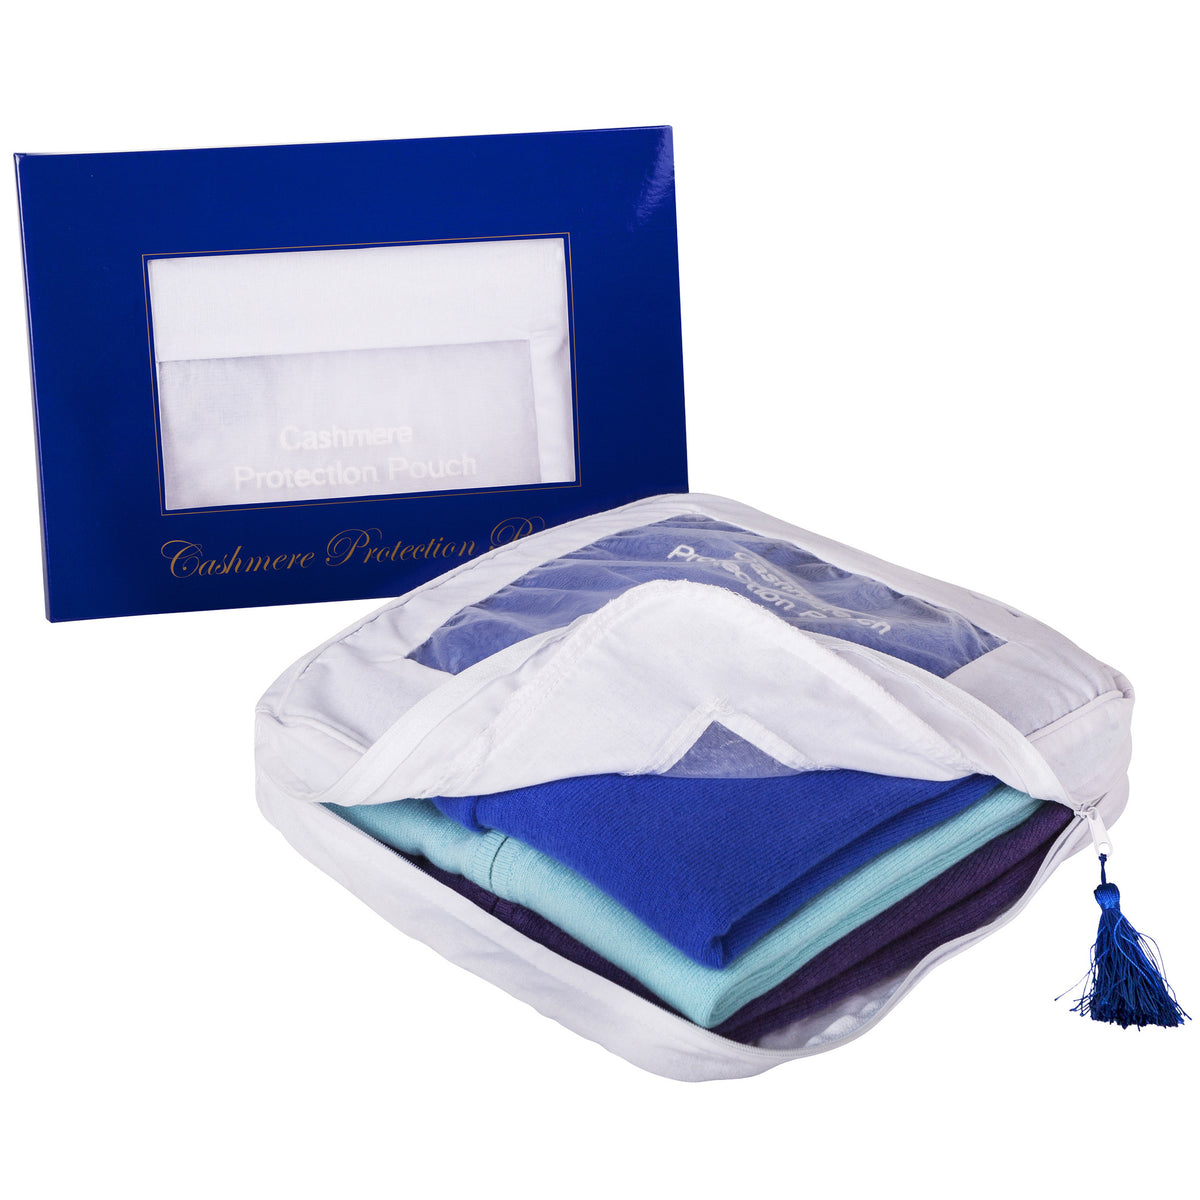 Anti Moth | Cashmere Storage Bag | Cashmere Storage Pouch | buy now at The Cashmere Choice London